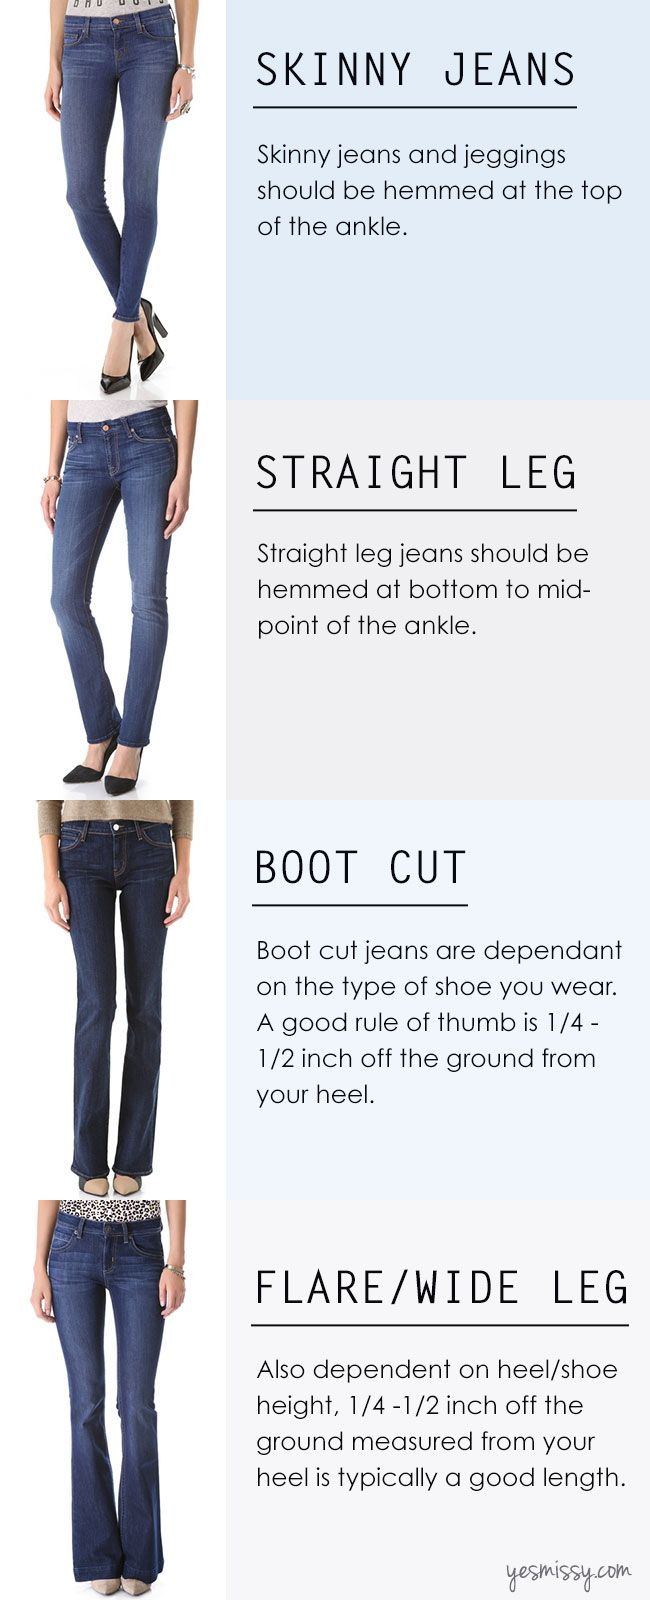 A Complete Guide On How To Hem Jeans - Find the perfect length for any jeans!